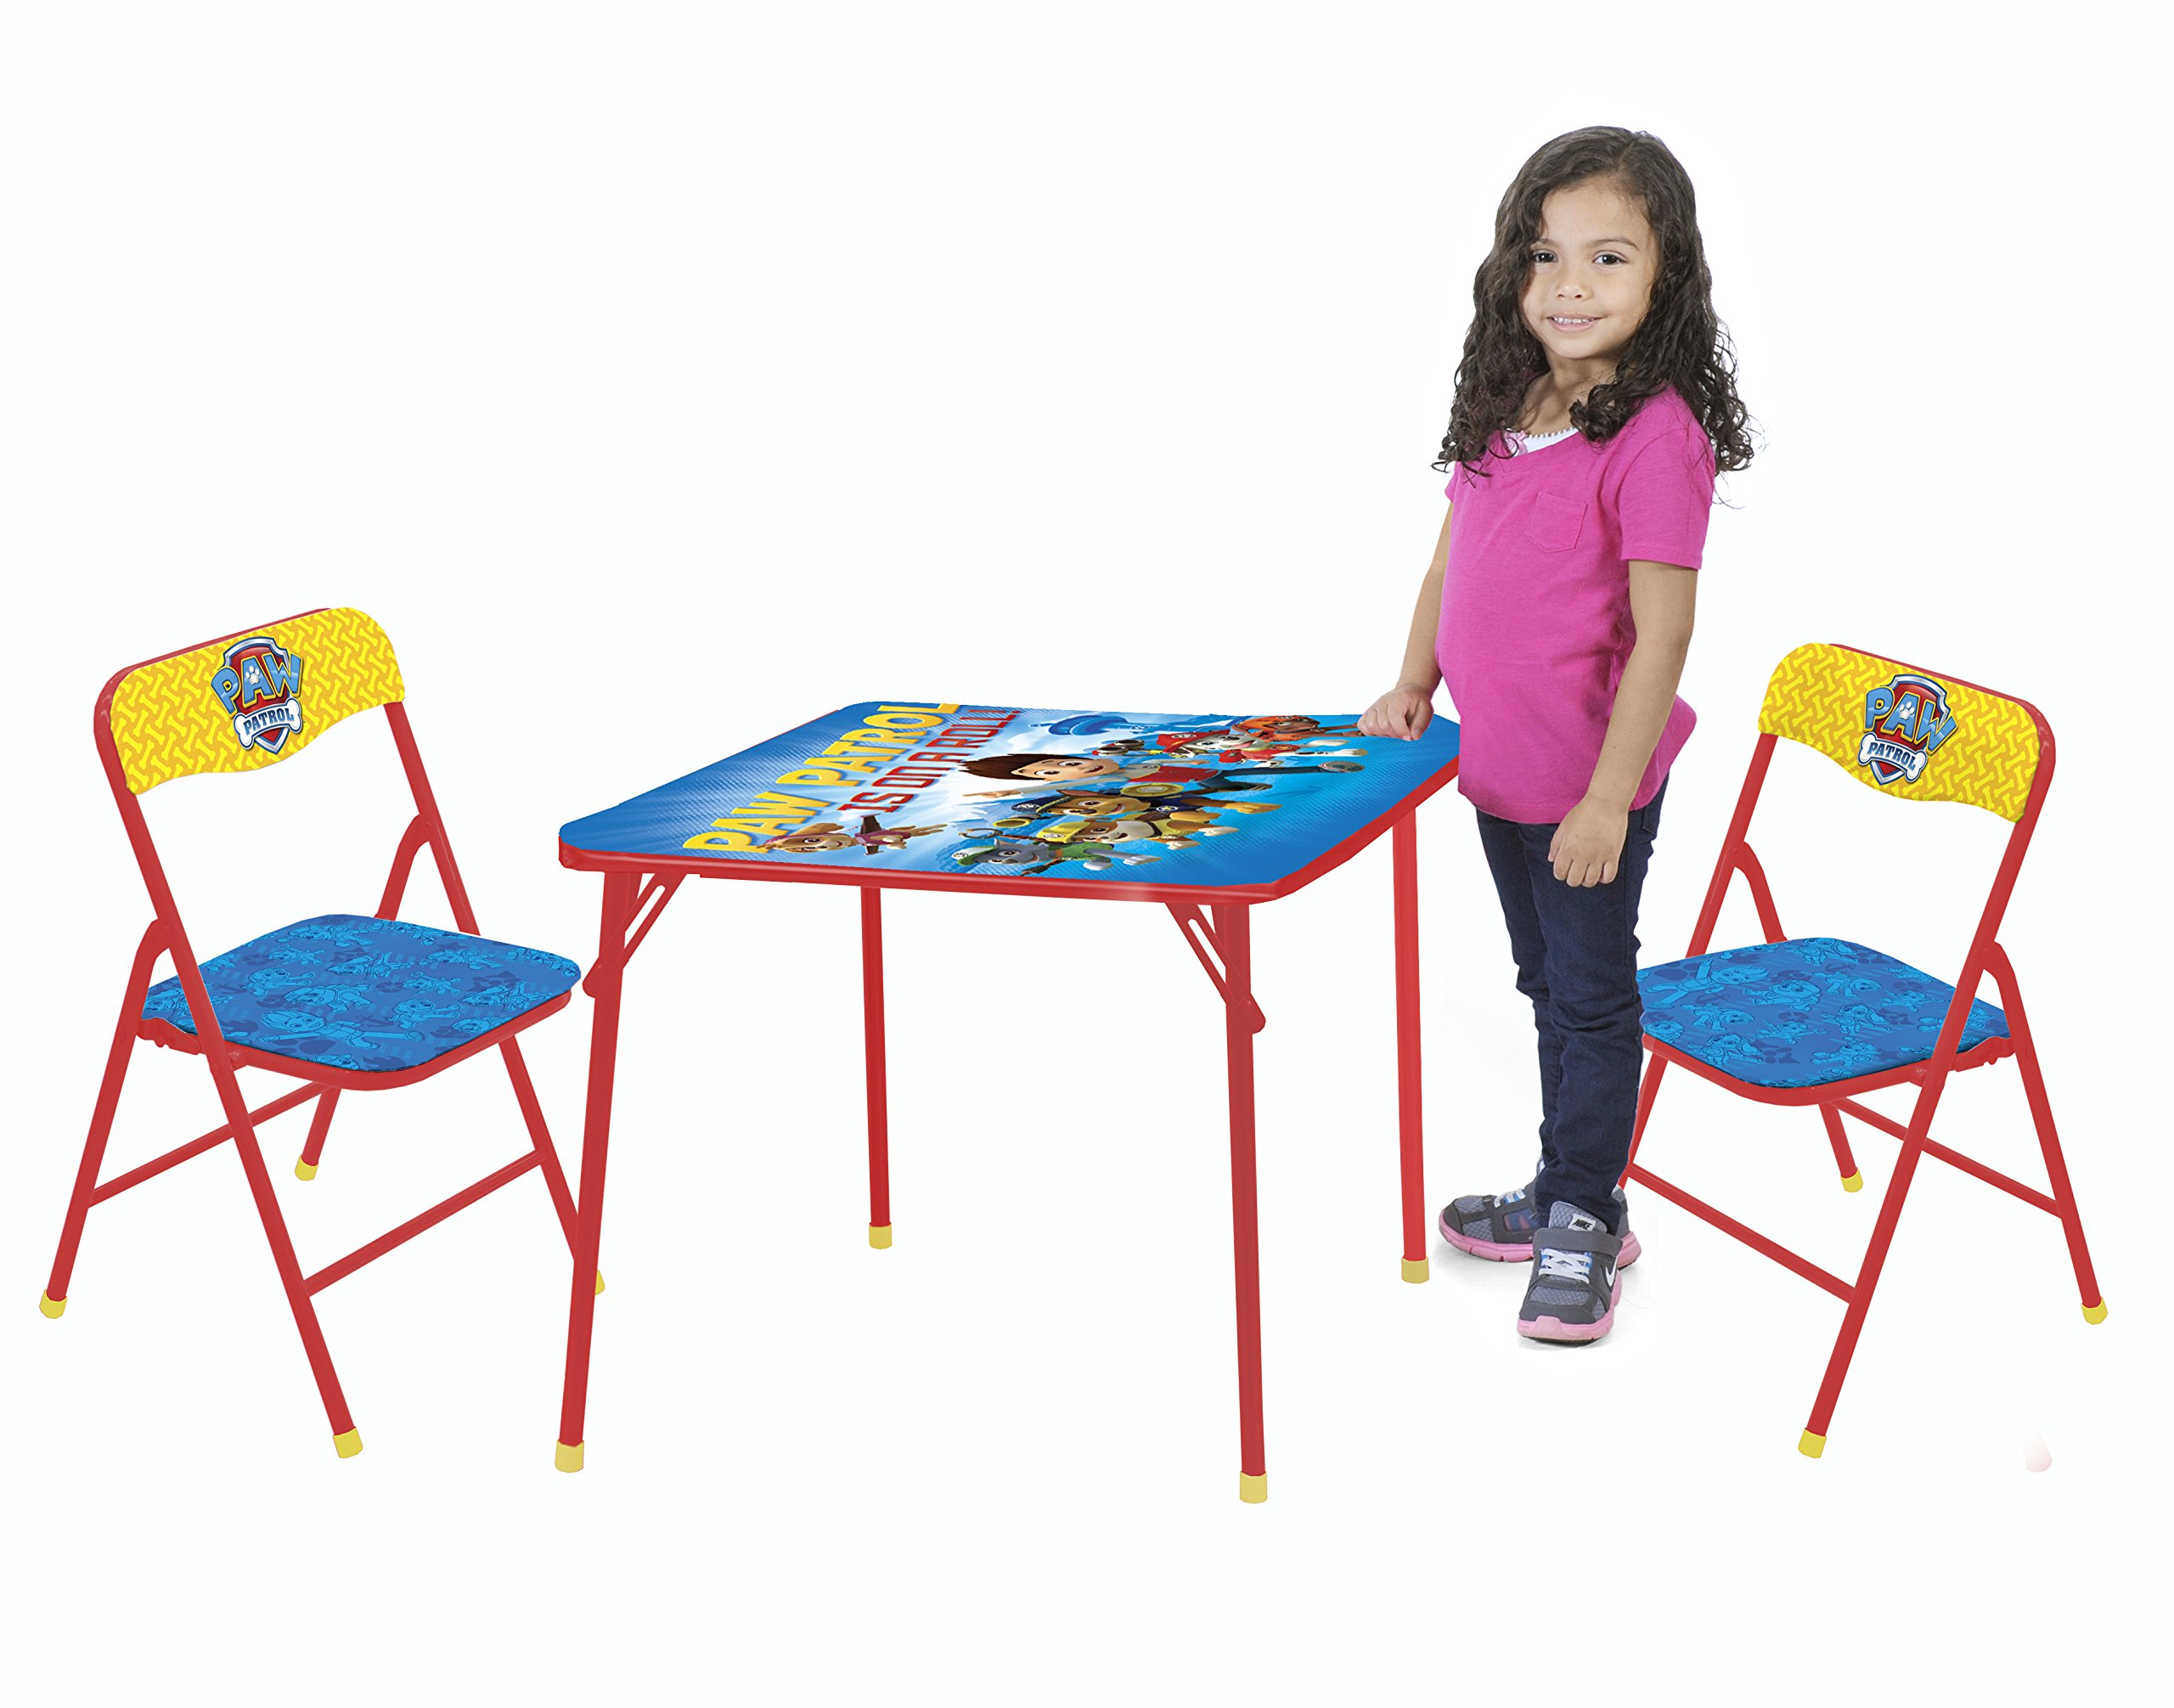 Nickelodeon Paw Patrol 3-Piece Kids Table & Chair Set Toy by Nickelodeon